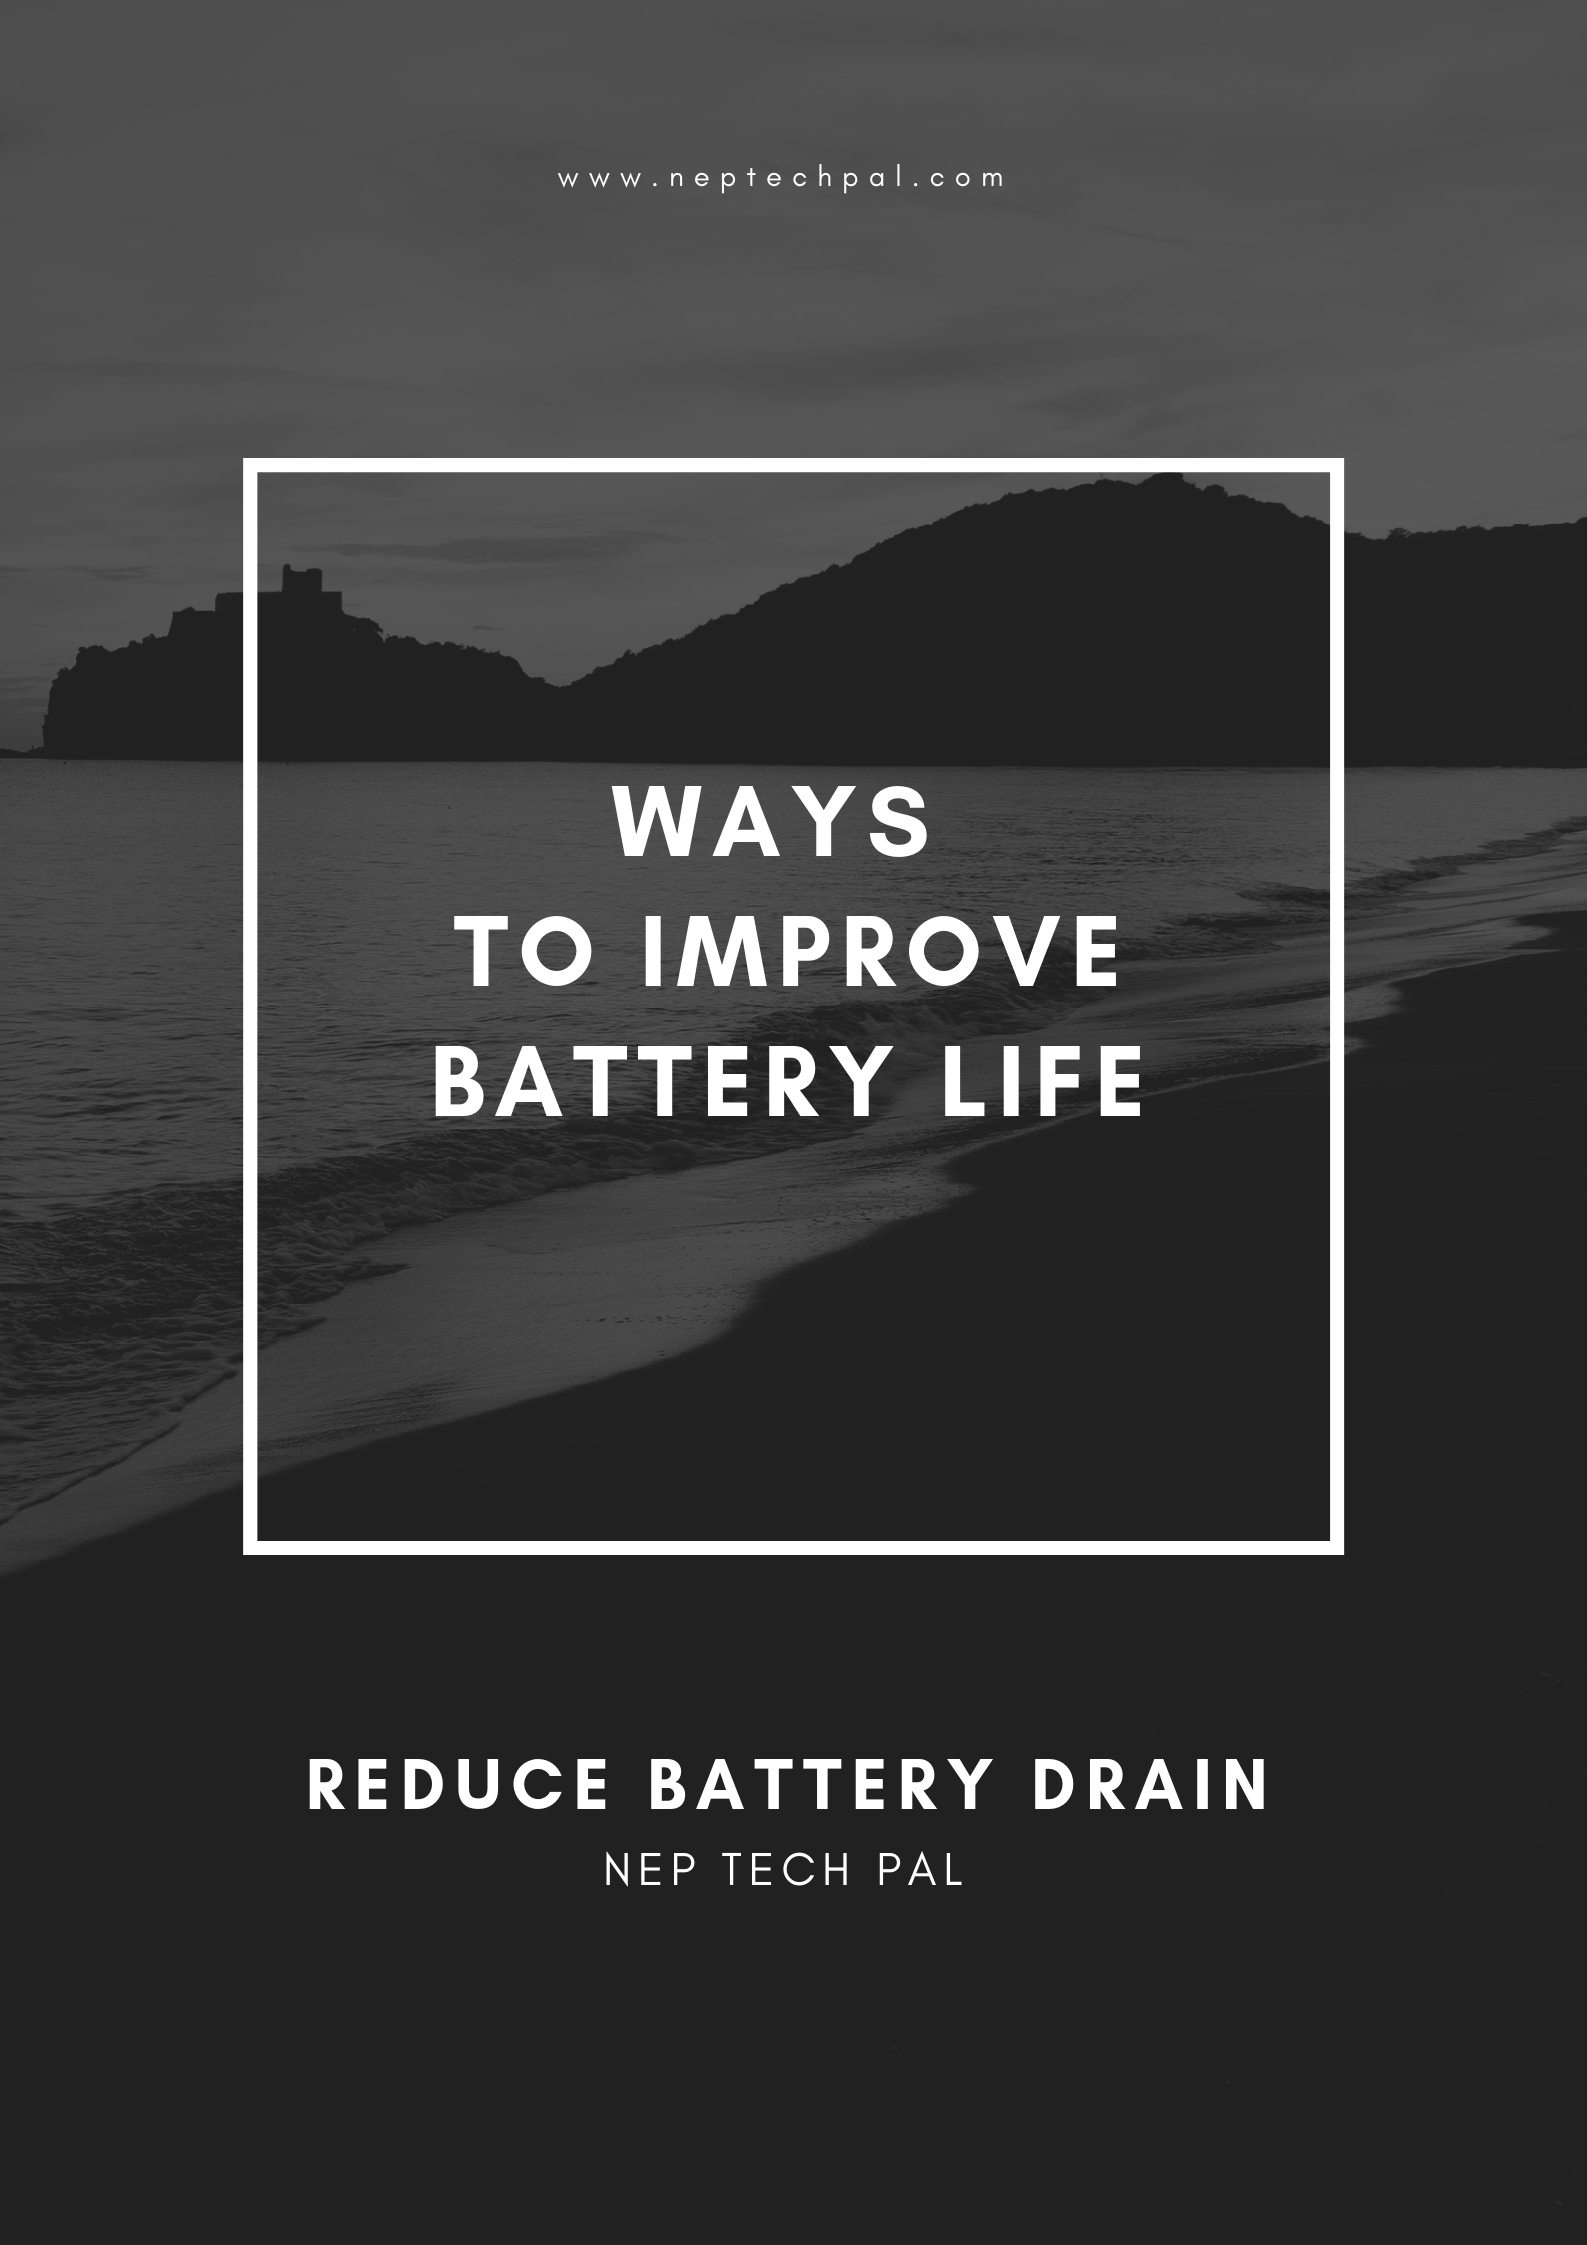 Steps to follow for good battery life: